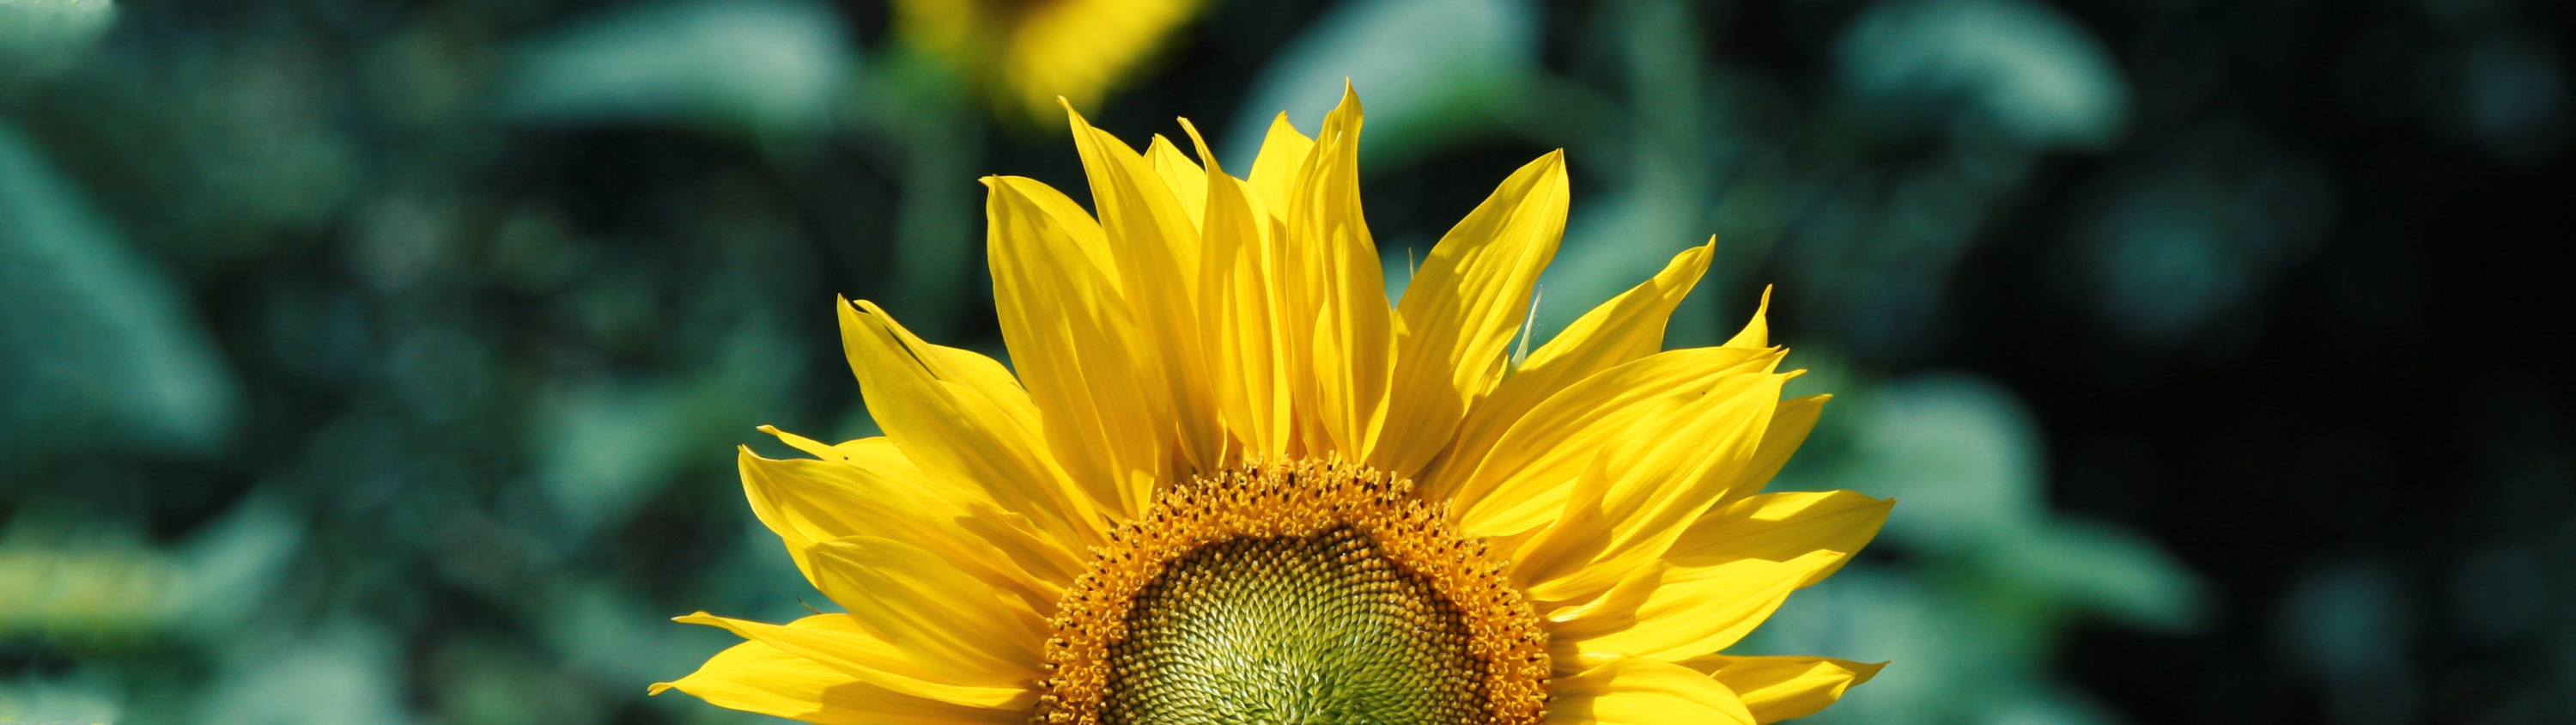 image of a sunflower